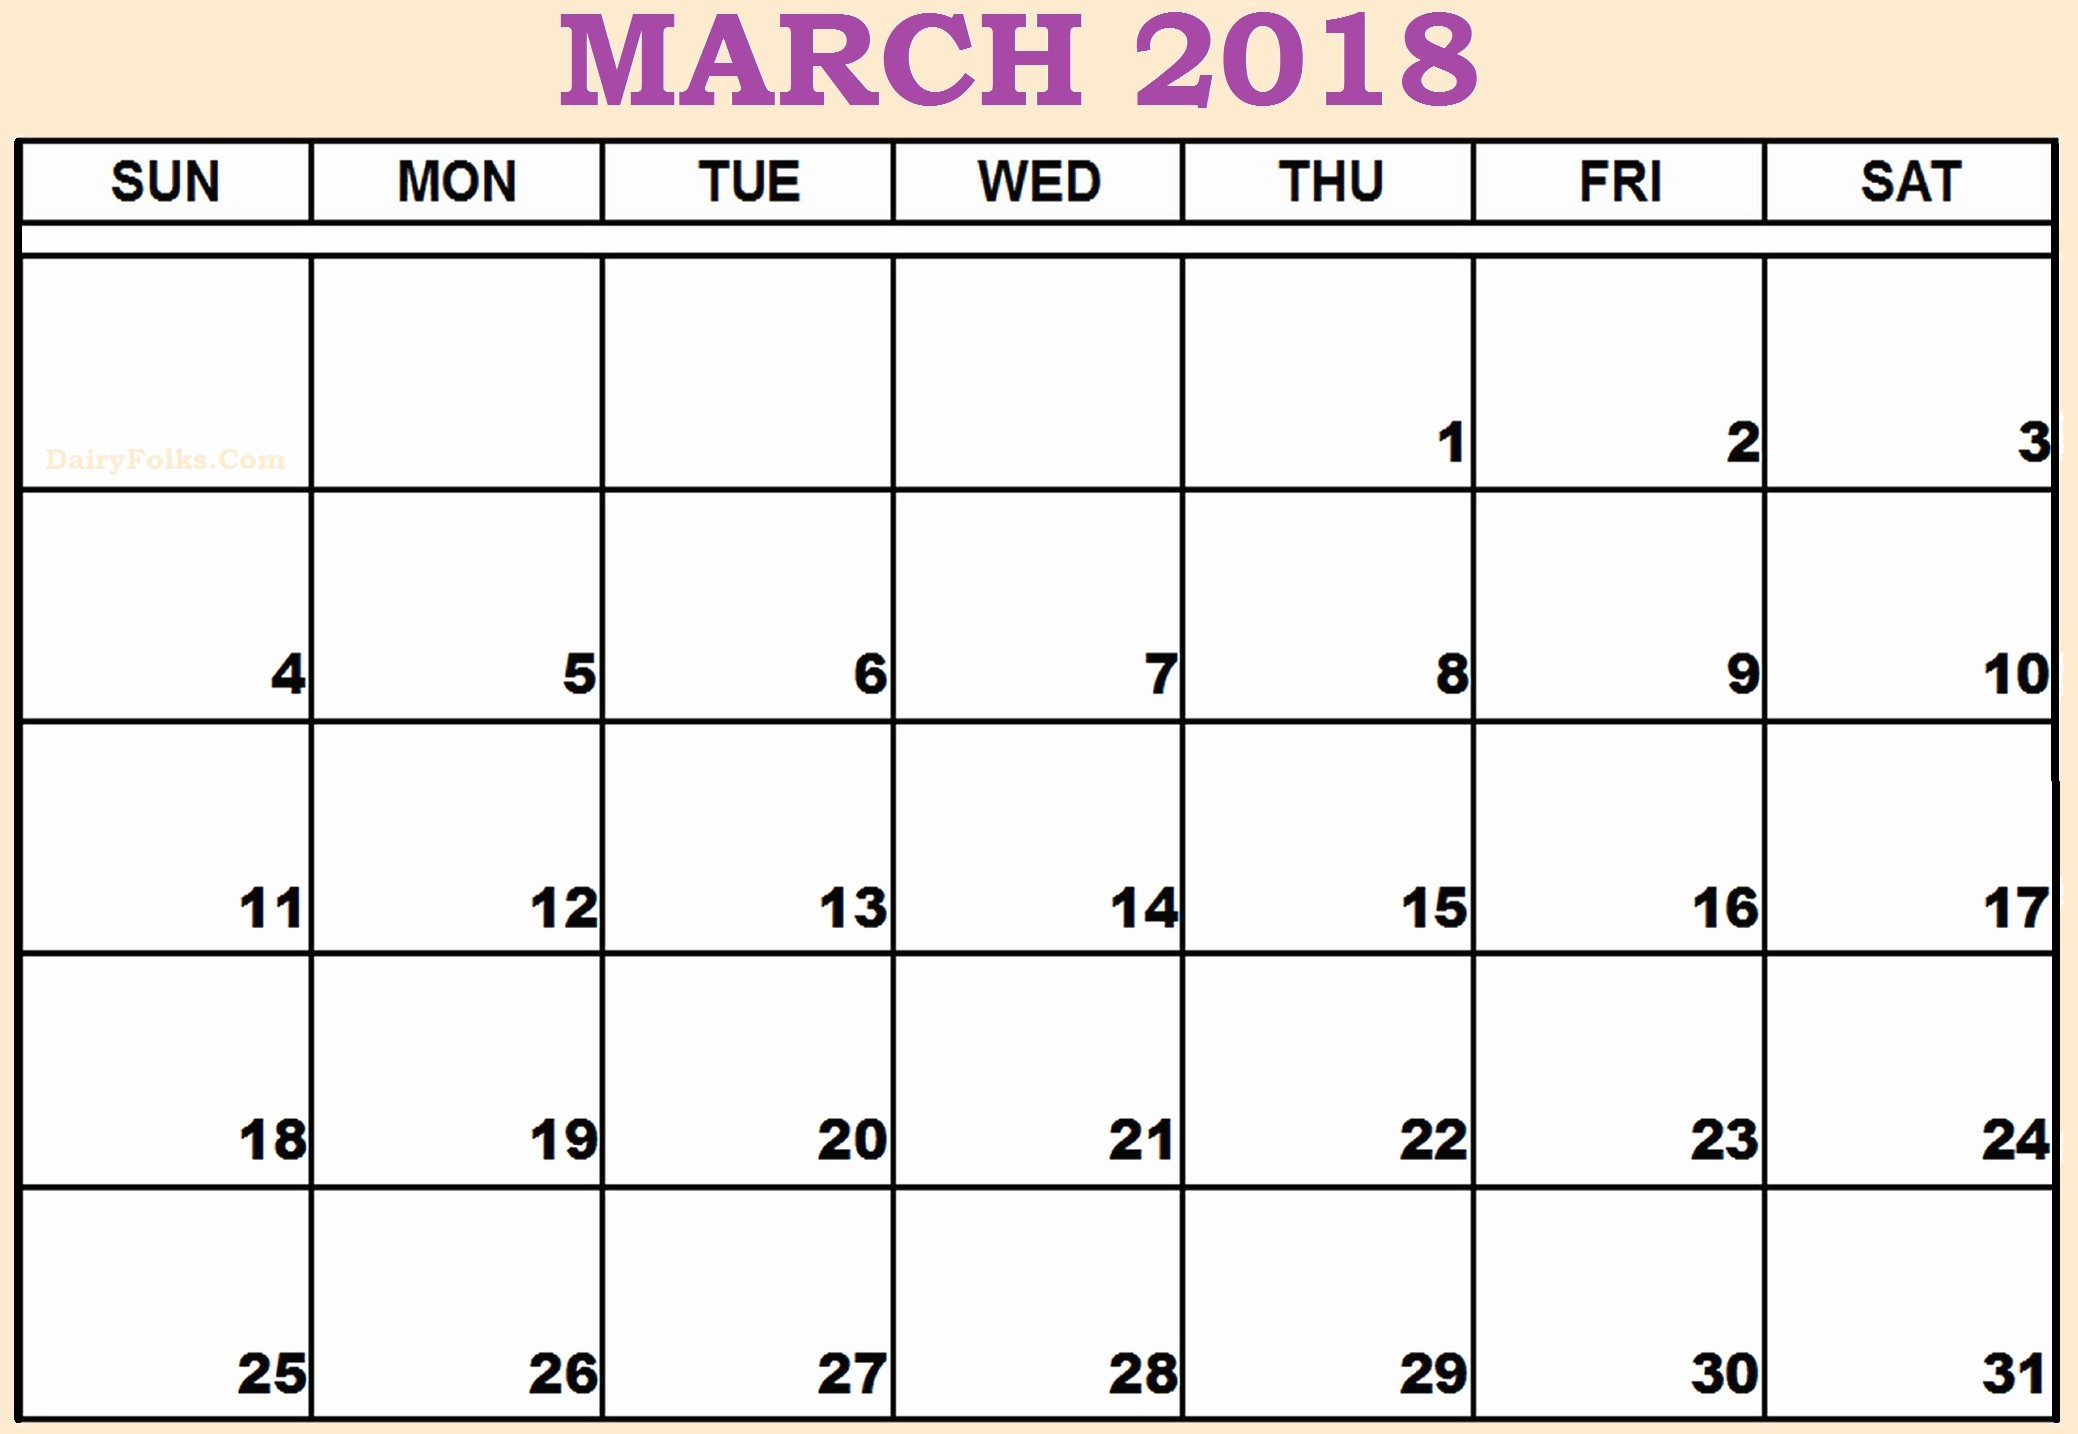 2018 Month by Month Calendar Luxury March 2018 Monthly Calendar Printable